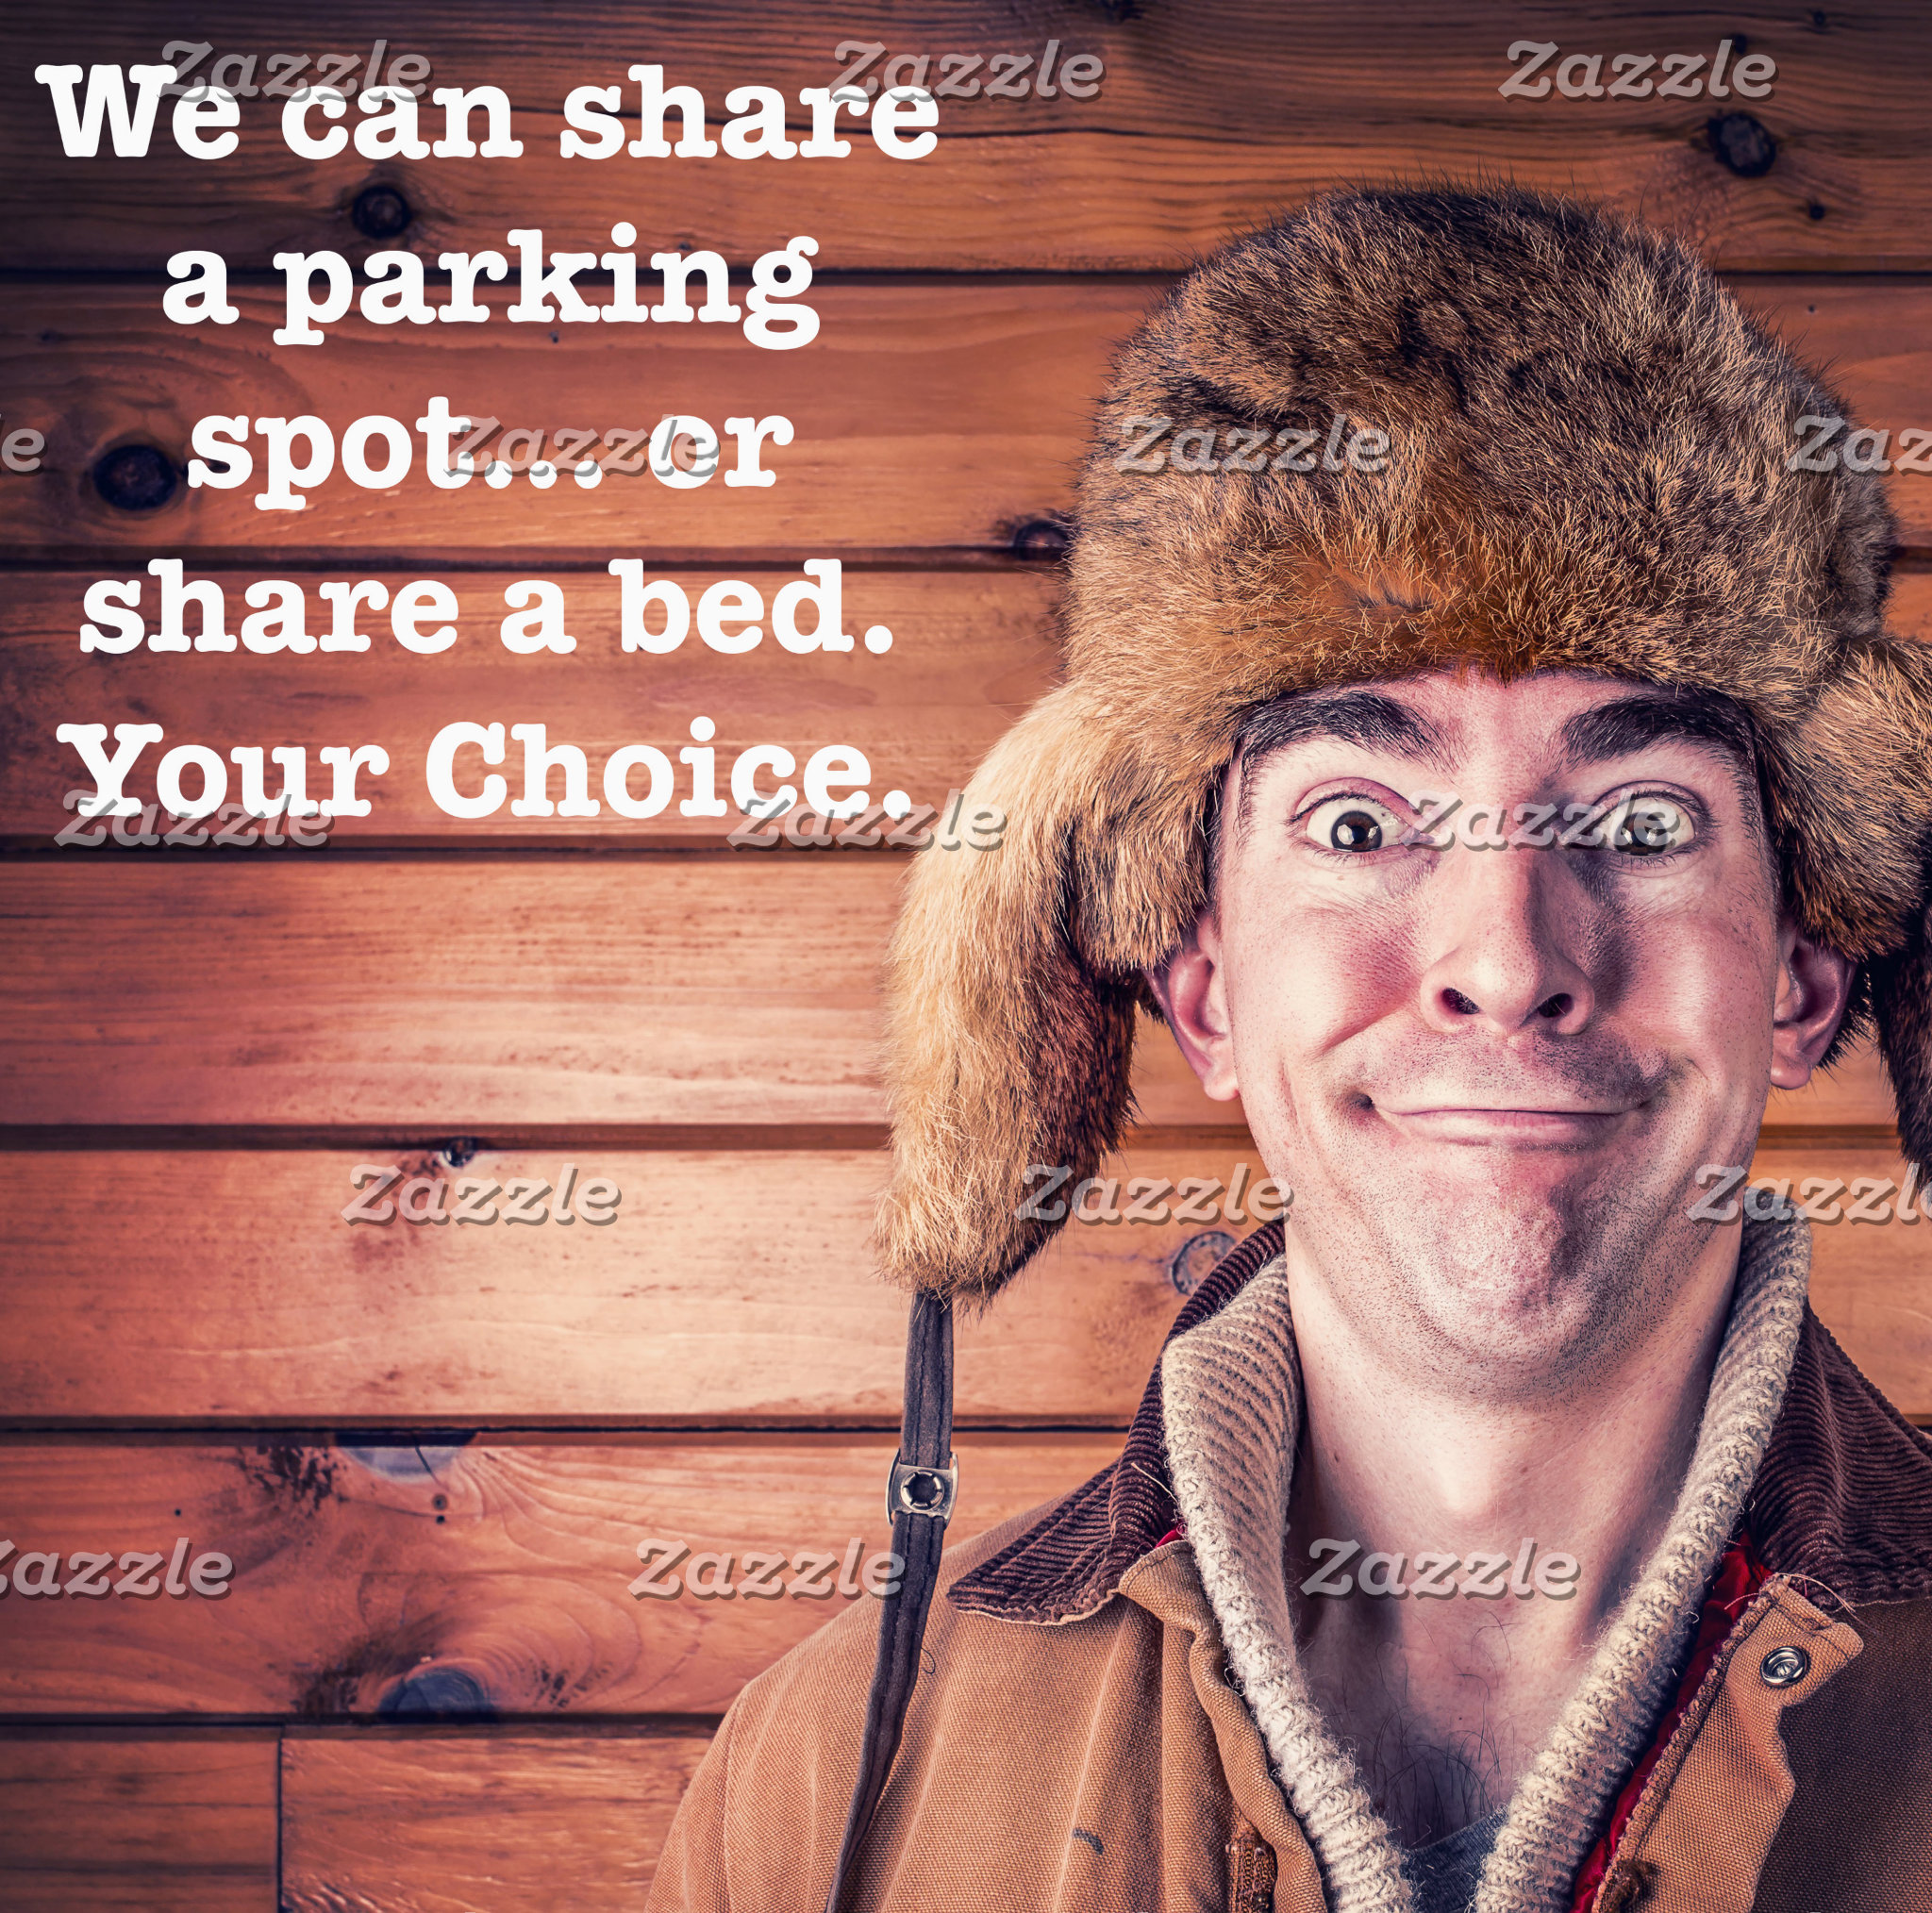 Share A Parking Spot or Share A Bed-Your Choice